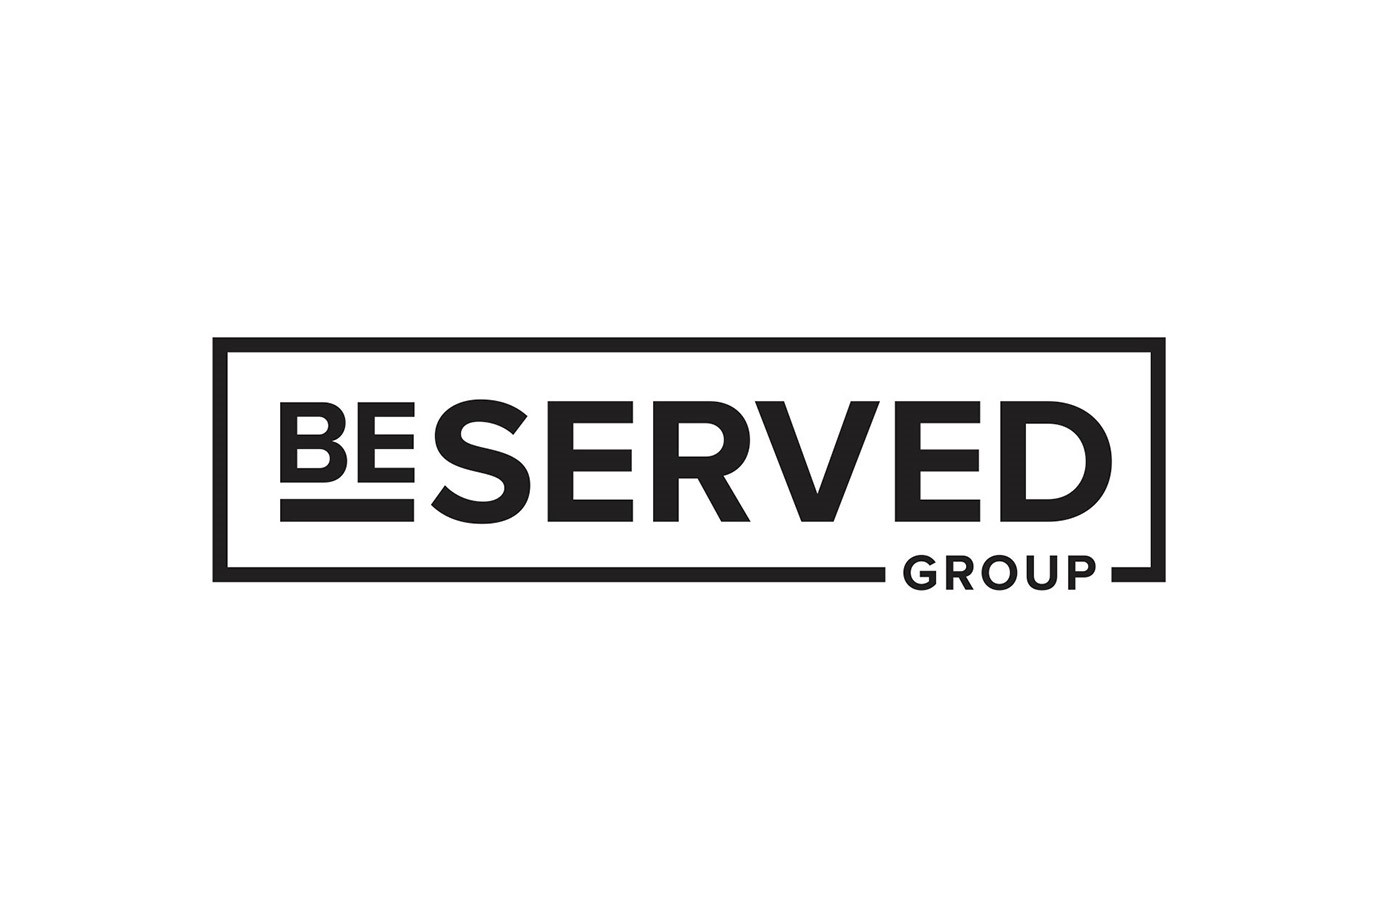 BeServed Group logo